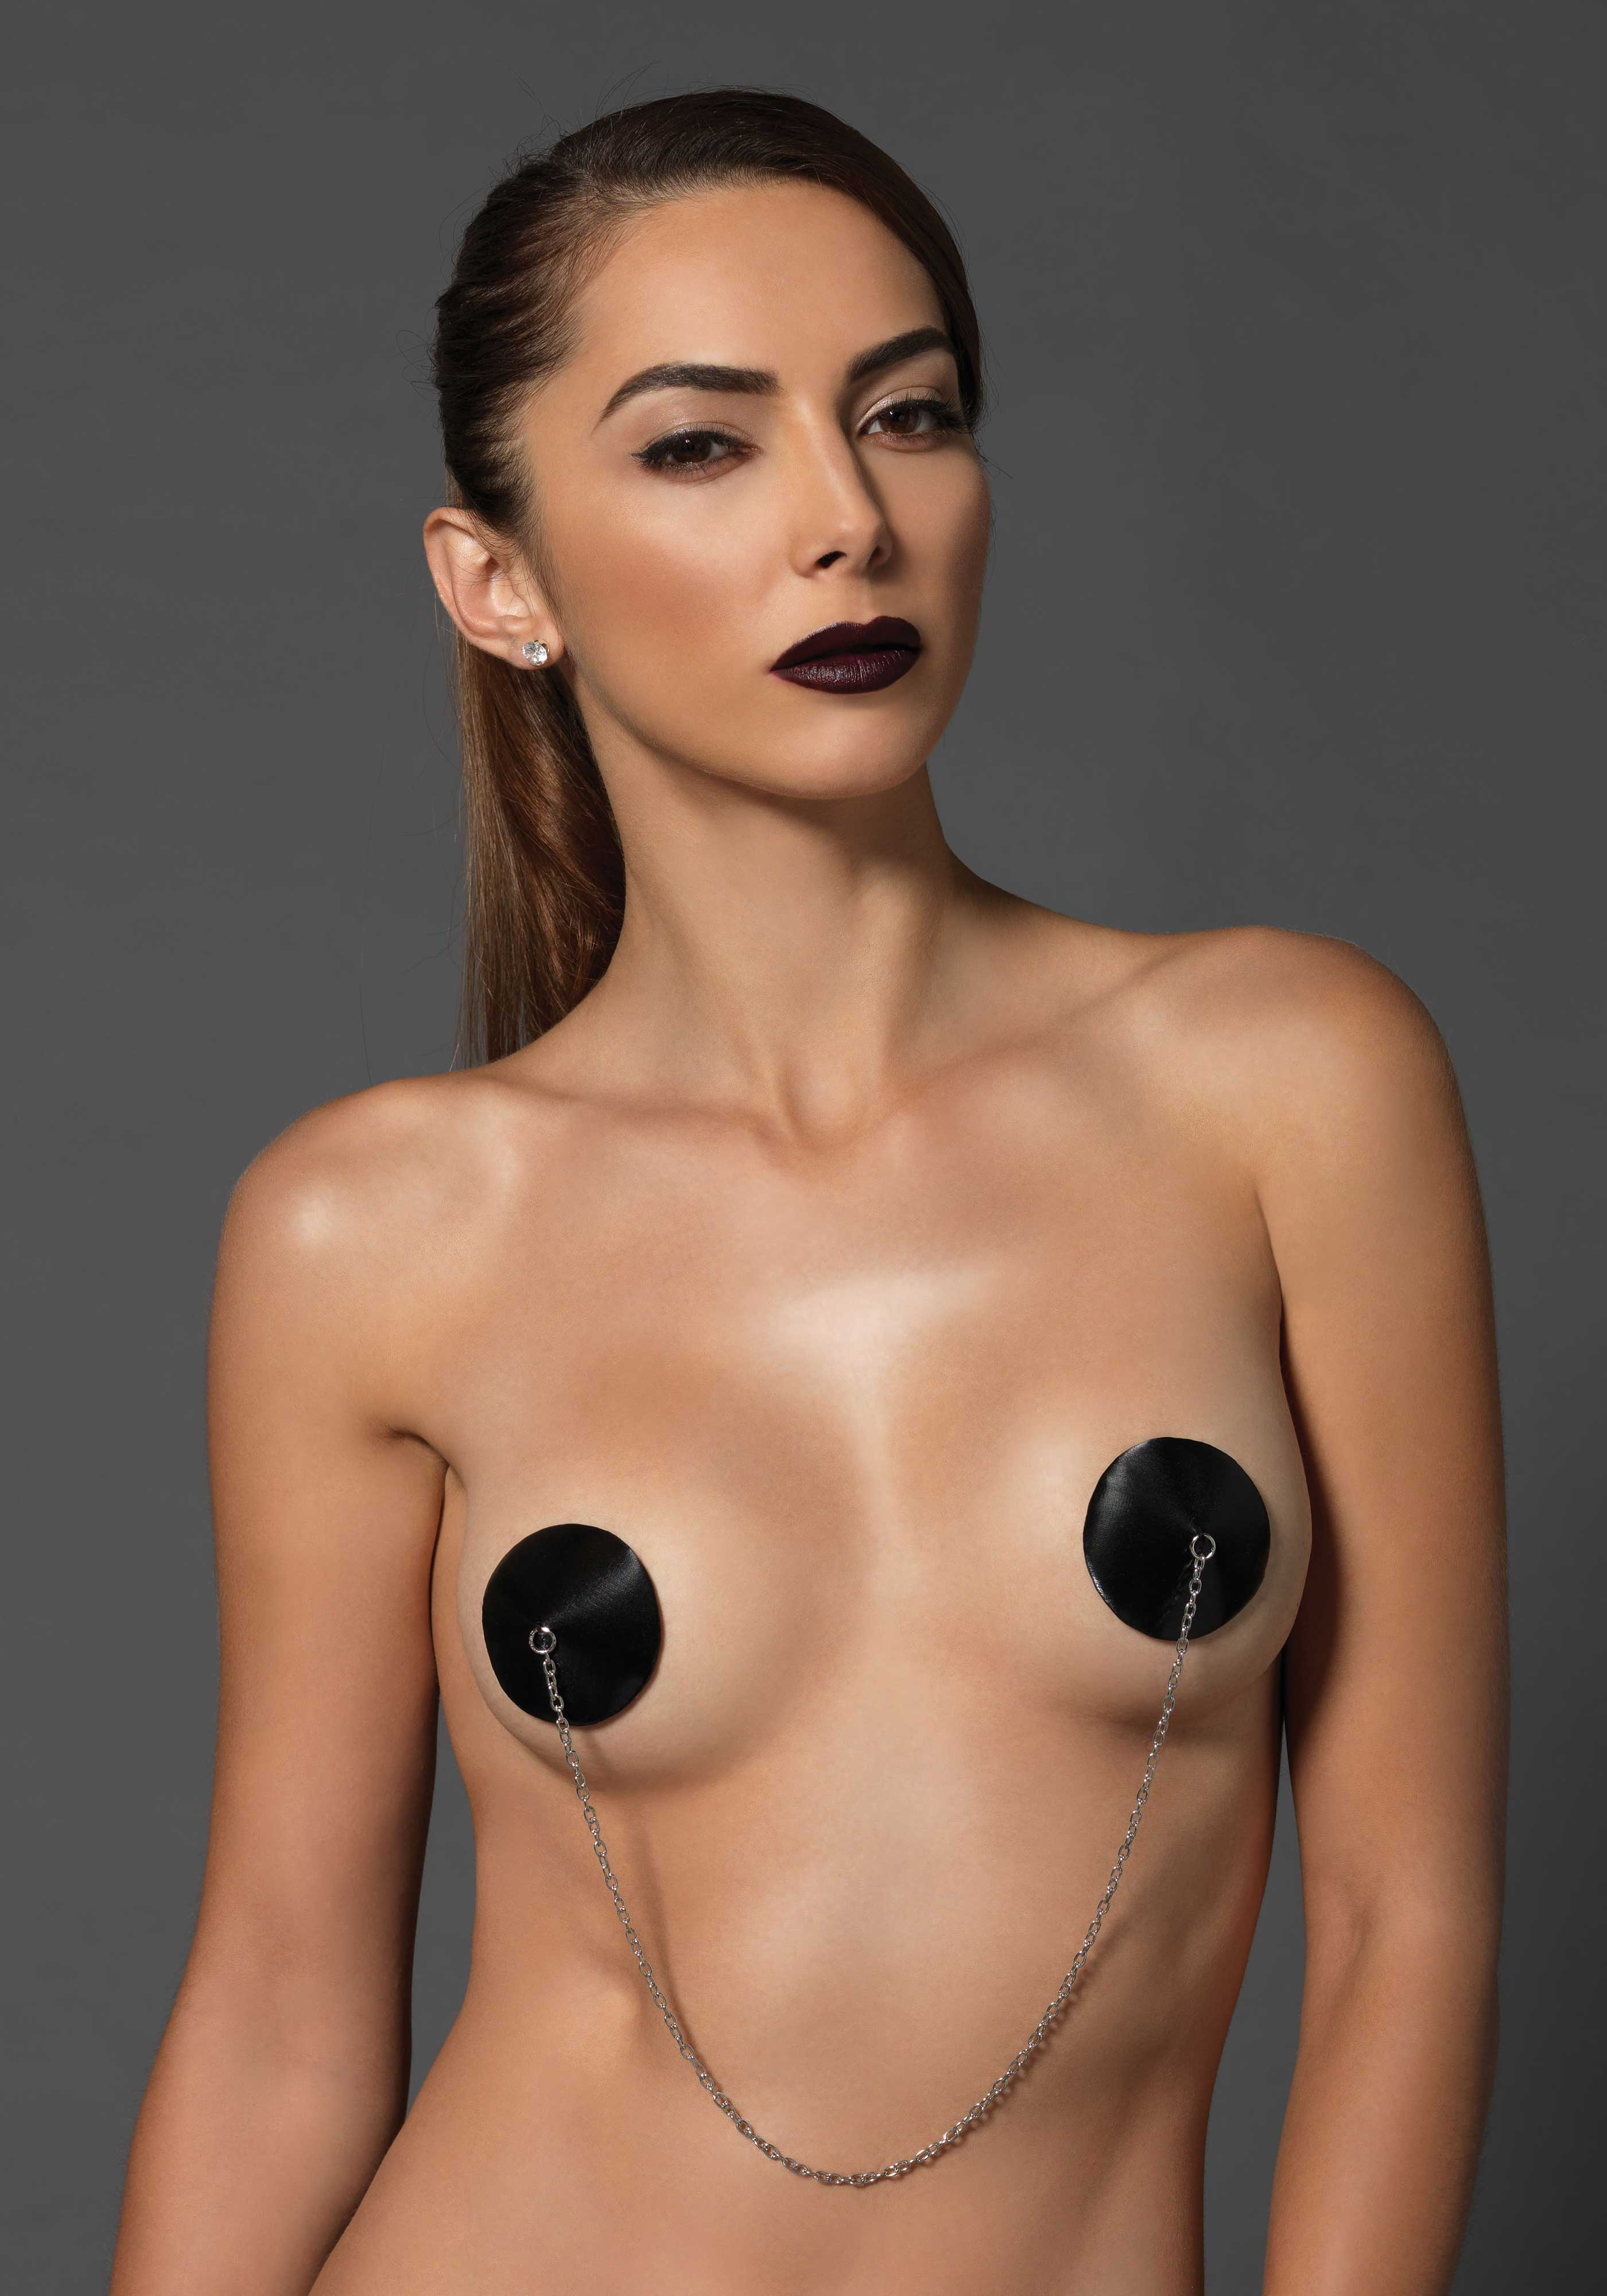 Kink Satin Nipple Covers with Chain